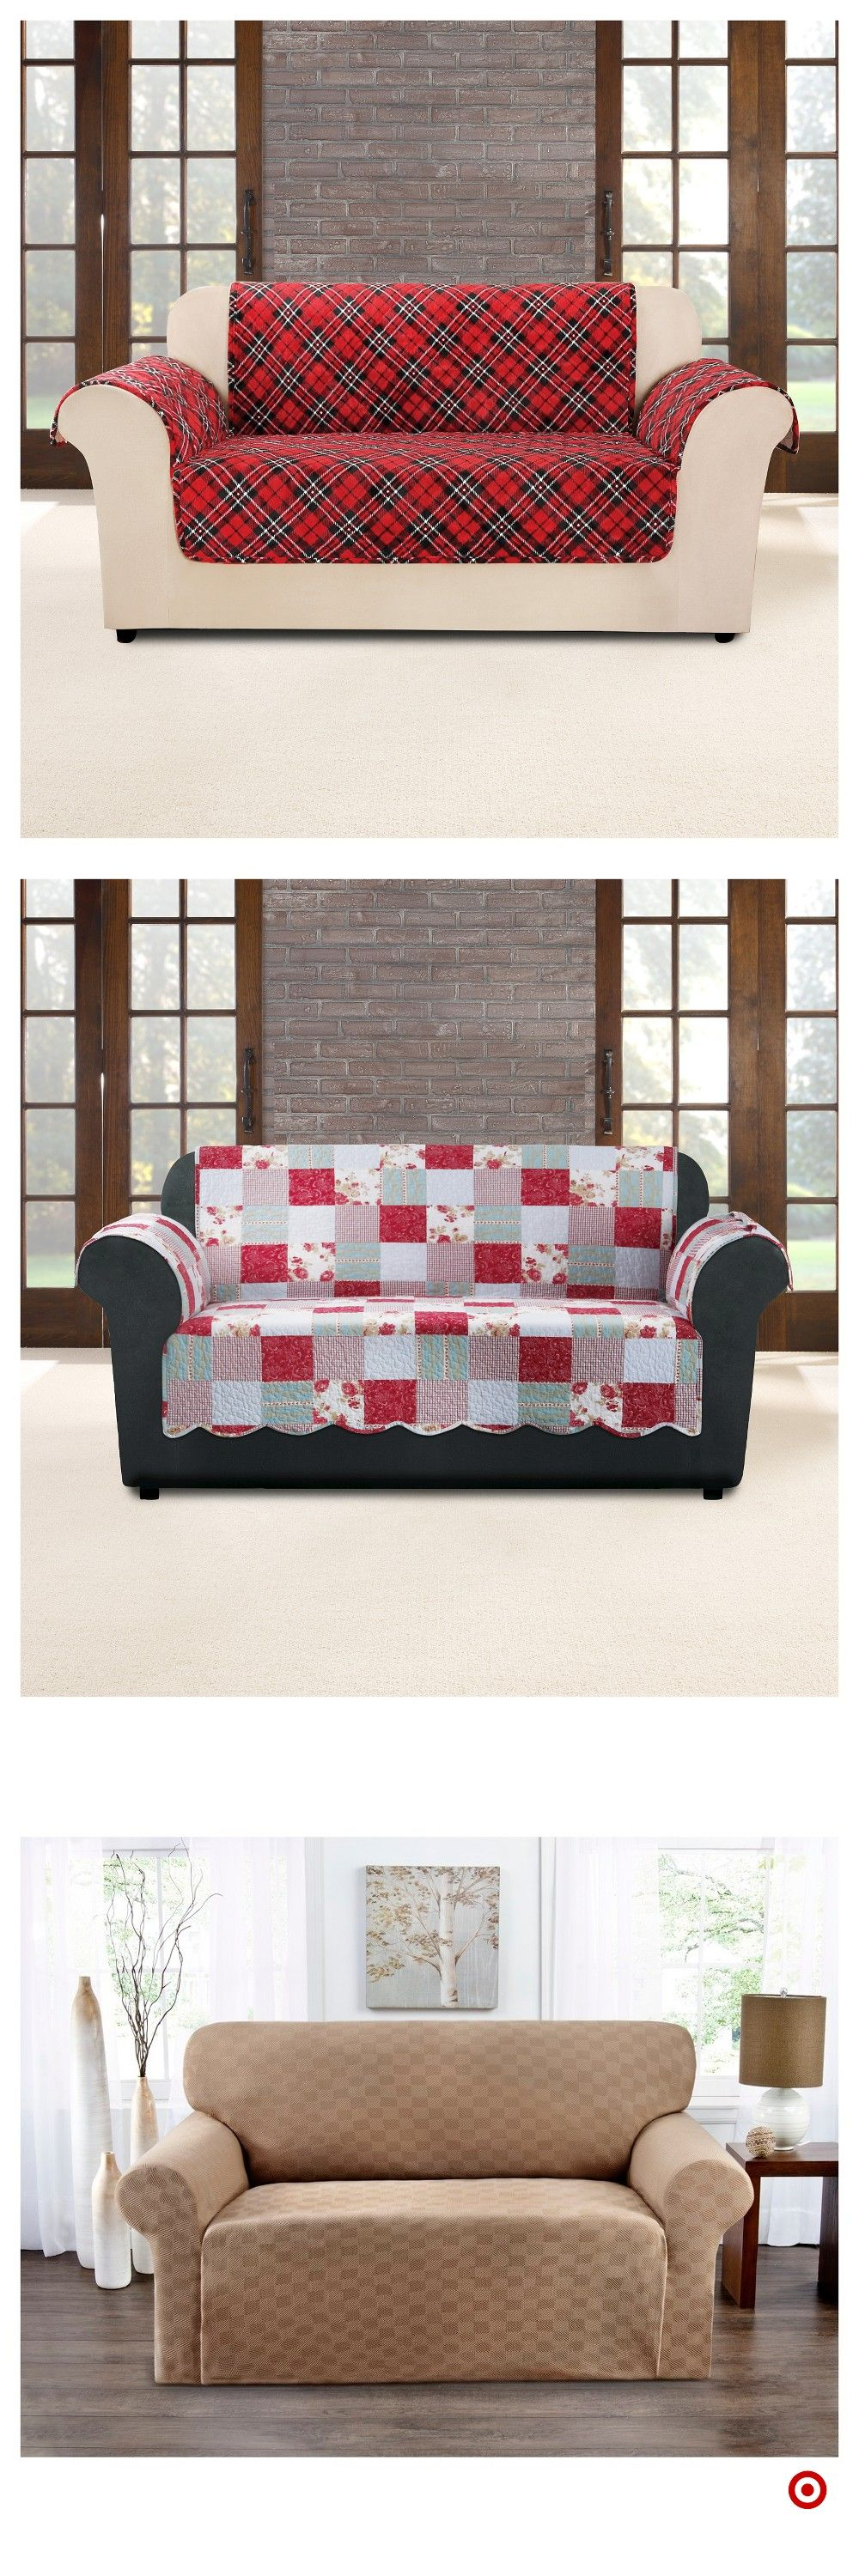 shop target for loveseat slipcover you will love at great low prices rh pinterest com